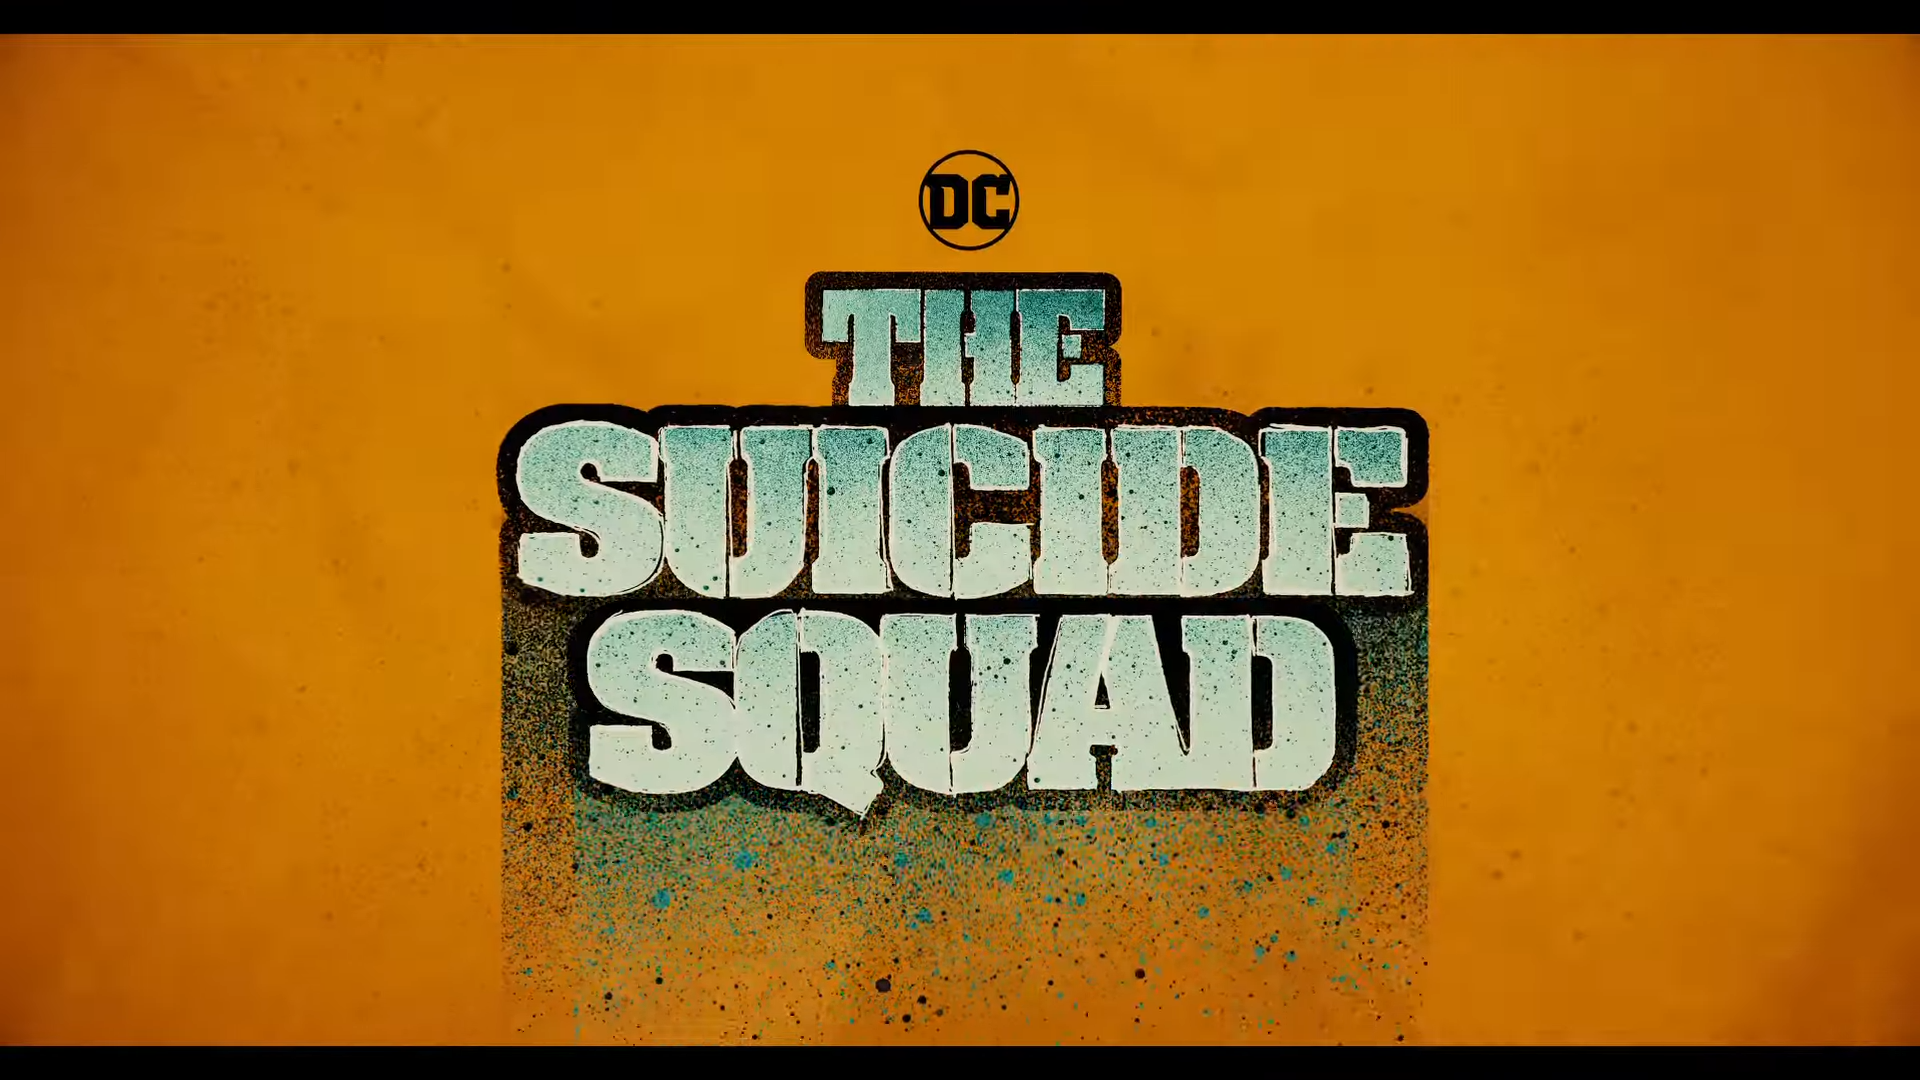 THE-SUICIDE-SQUAD-Rebellion-Trailer-2-19-screenshot-16